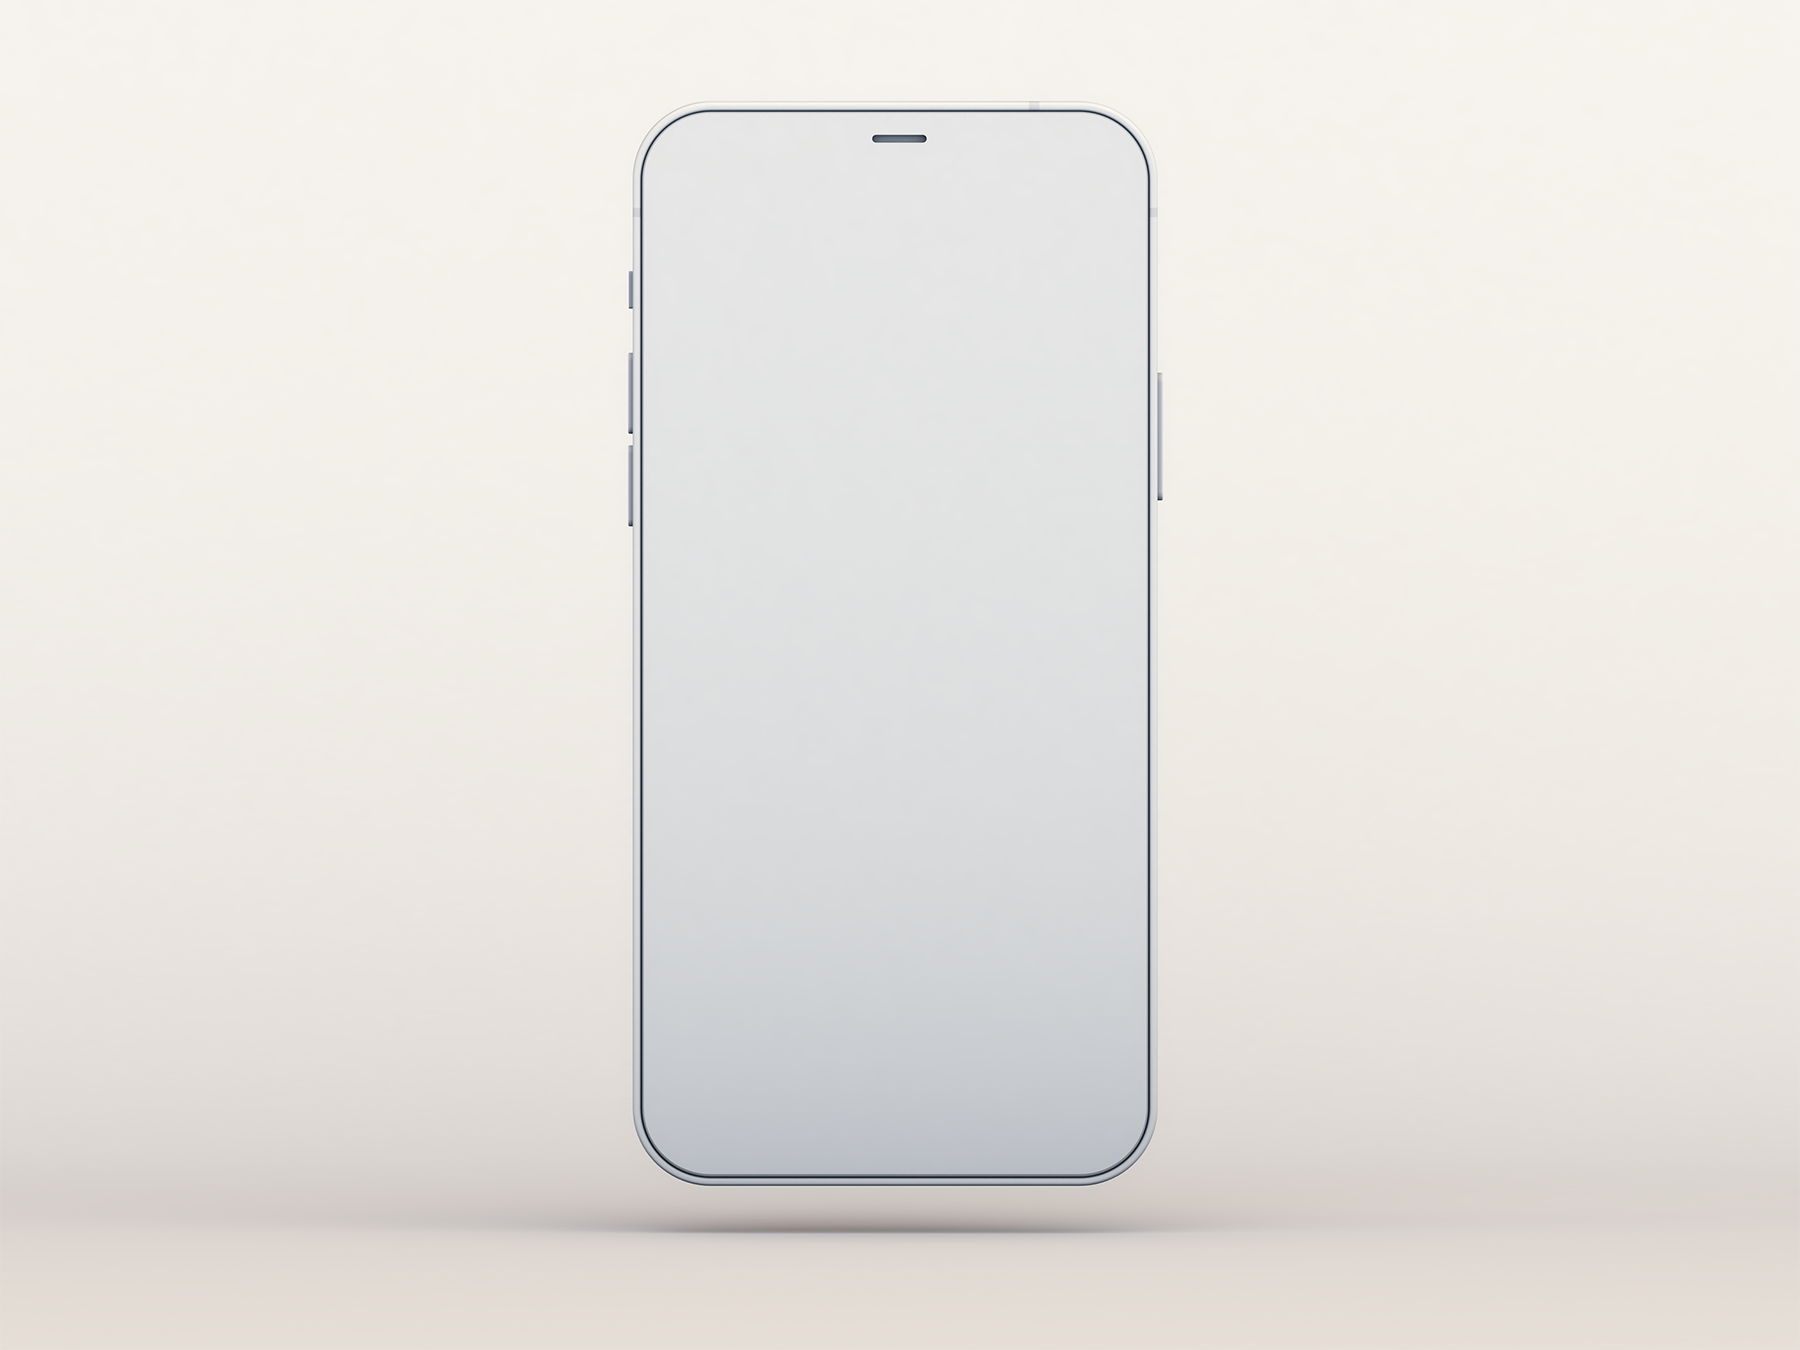 Free Clay-Style iPhone 12 Mockup